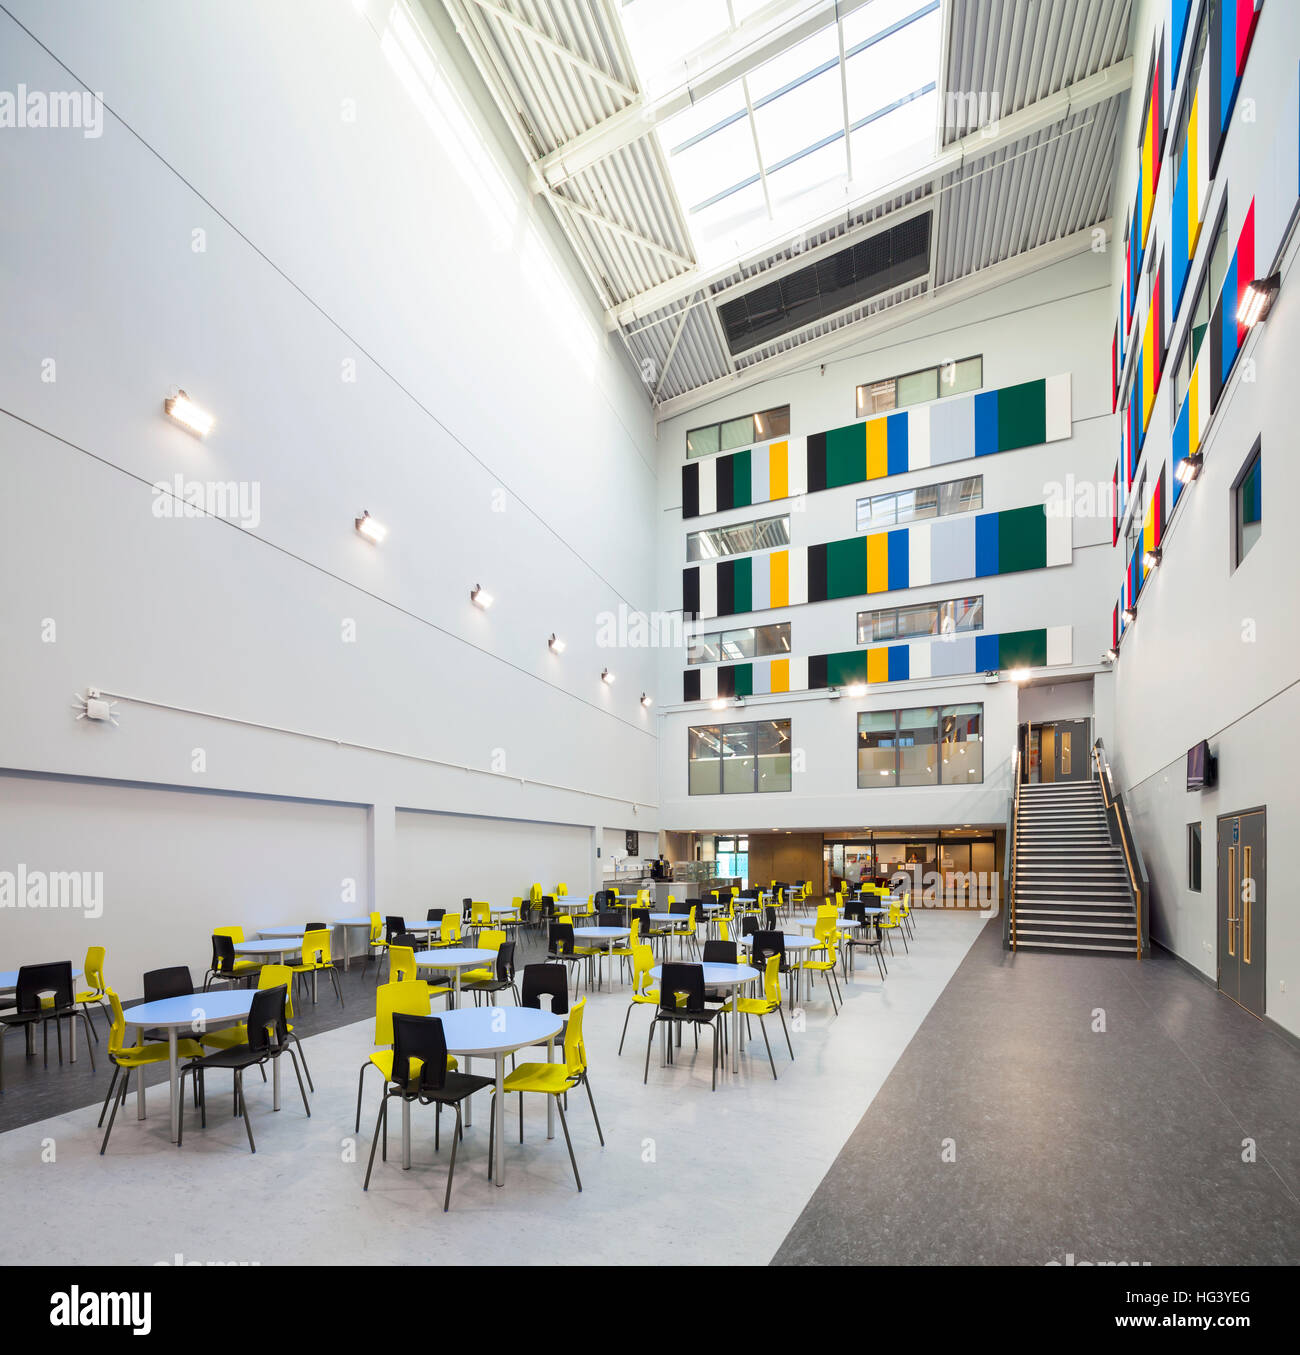 Crest Academy, Brent, London, UK. Two schools, a girls and a boys academy with shared post 16 facilities. - Stock Image